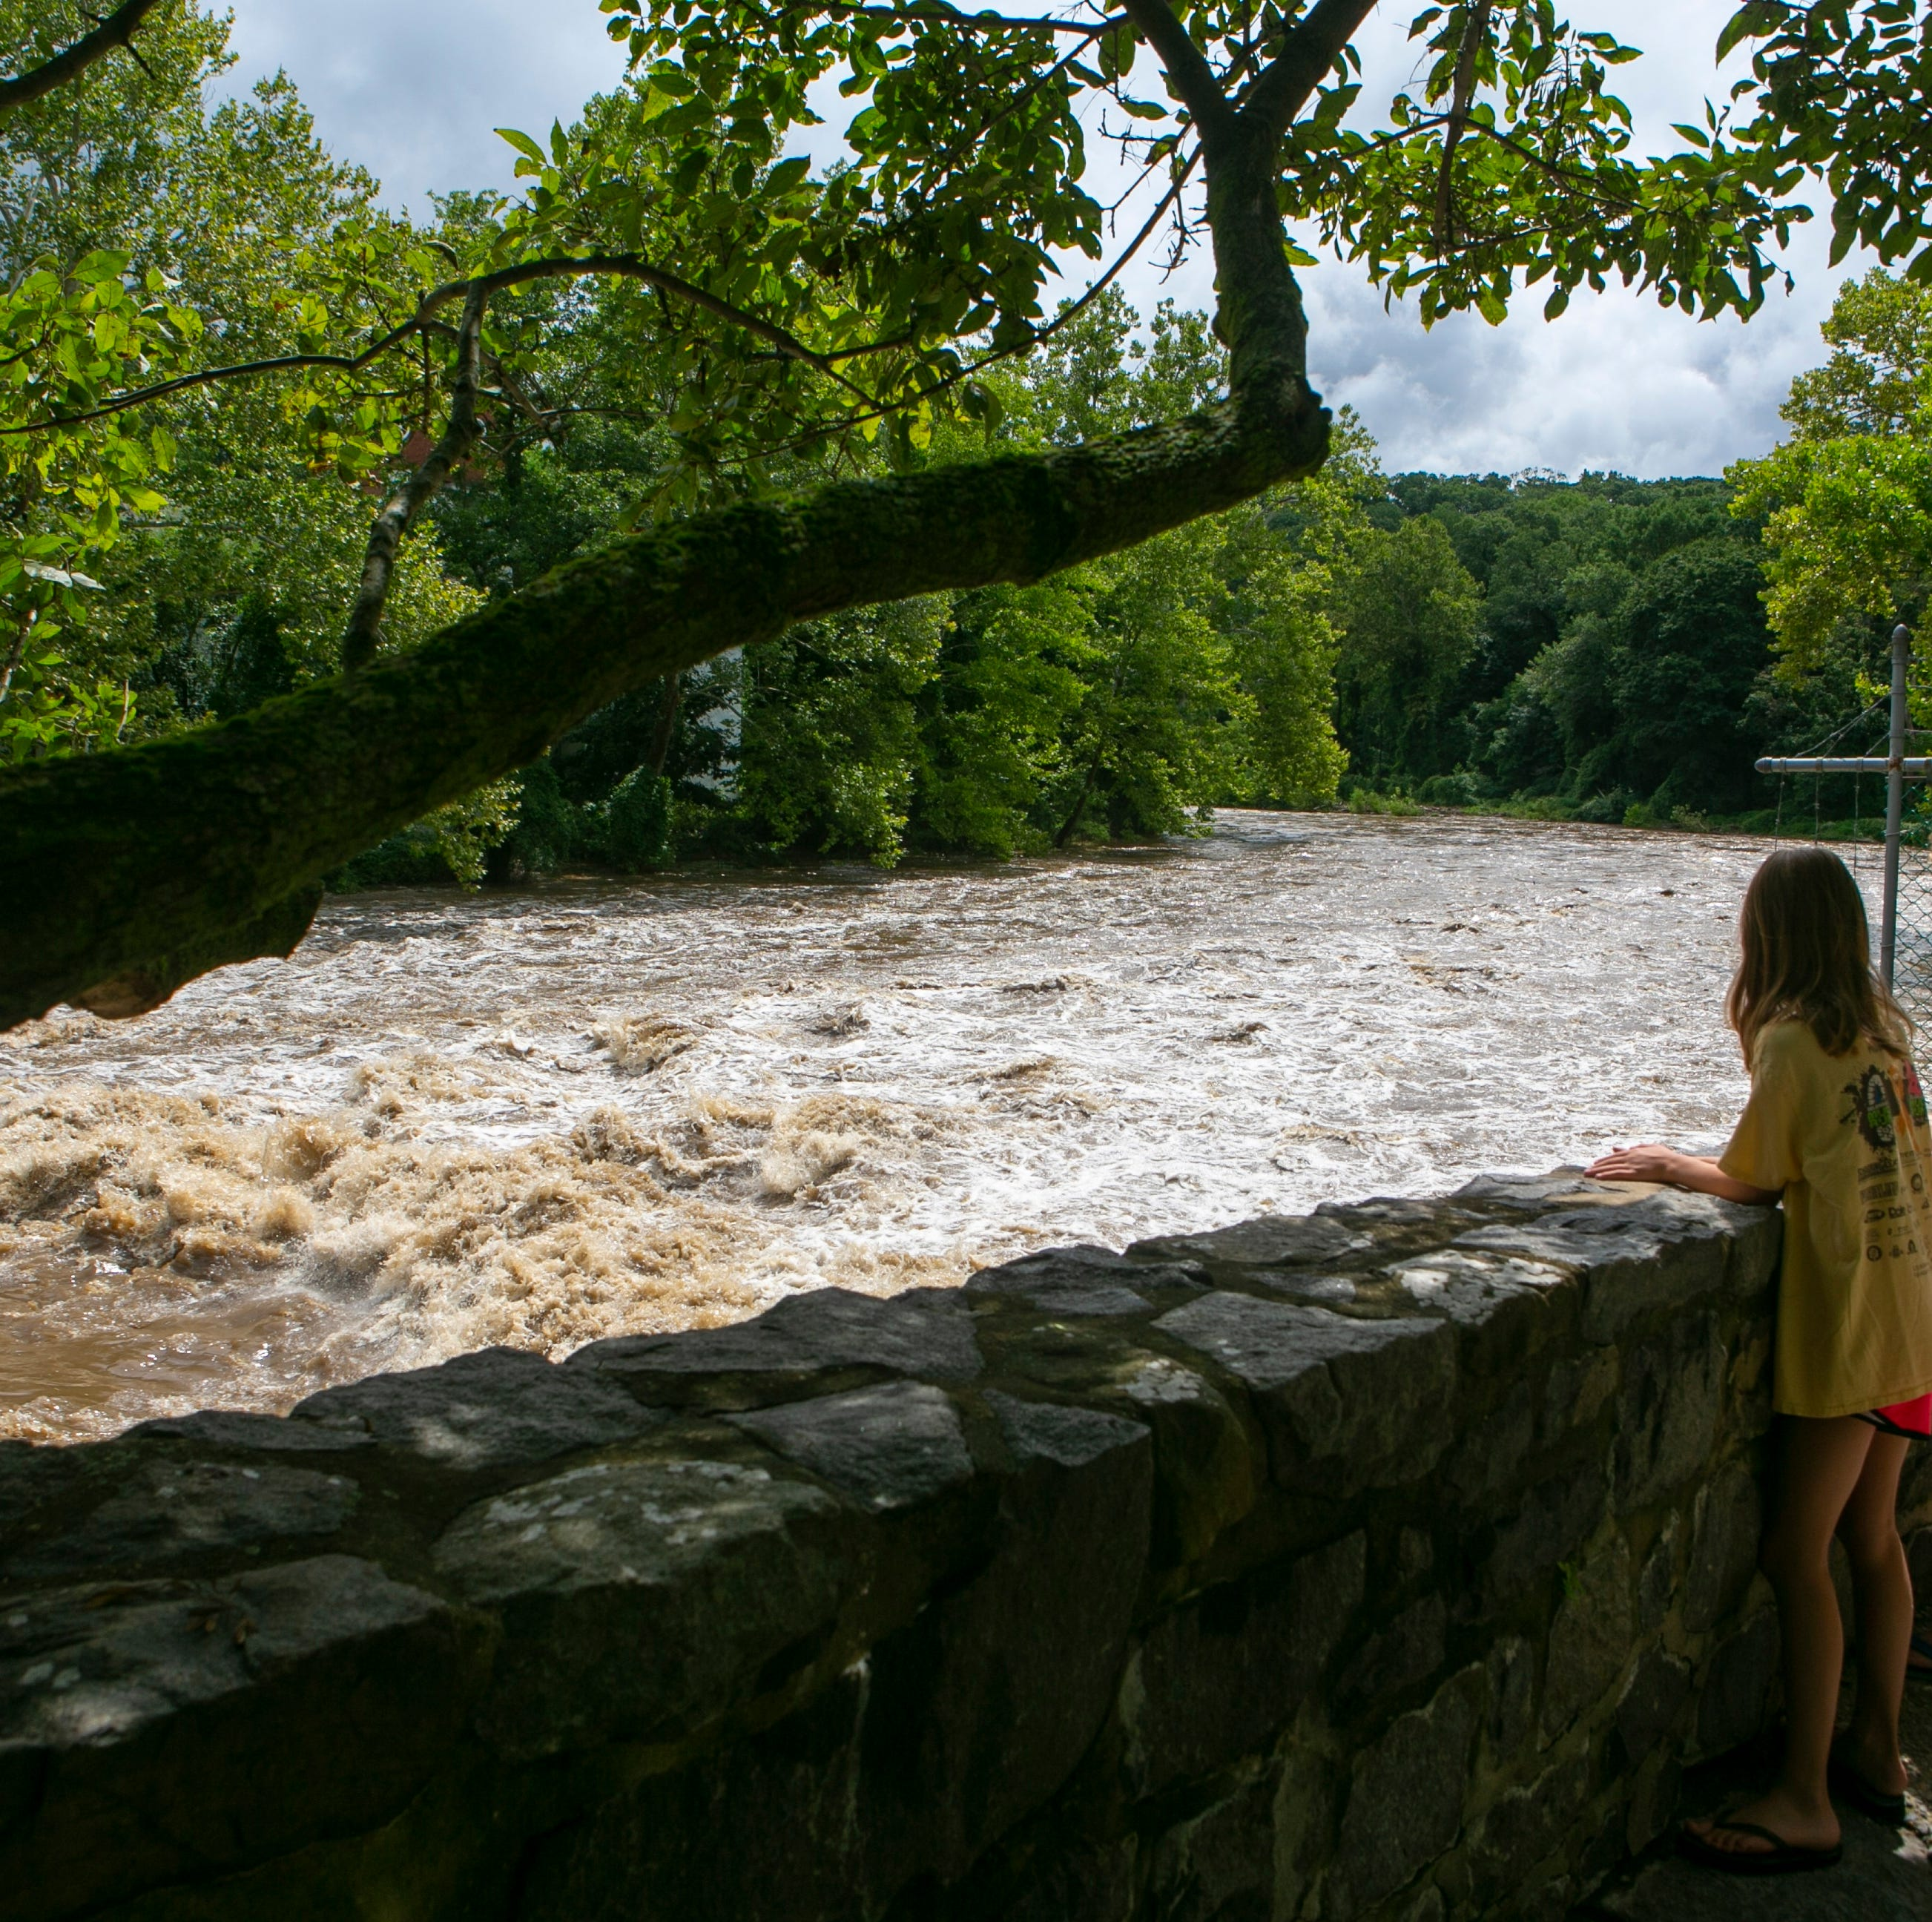 Flooded roads, swollen rivers from morning storms